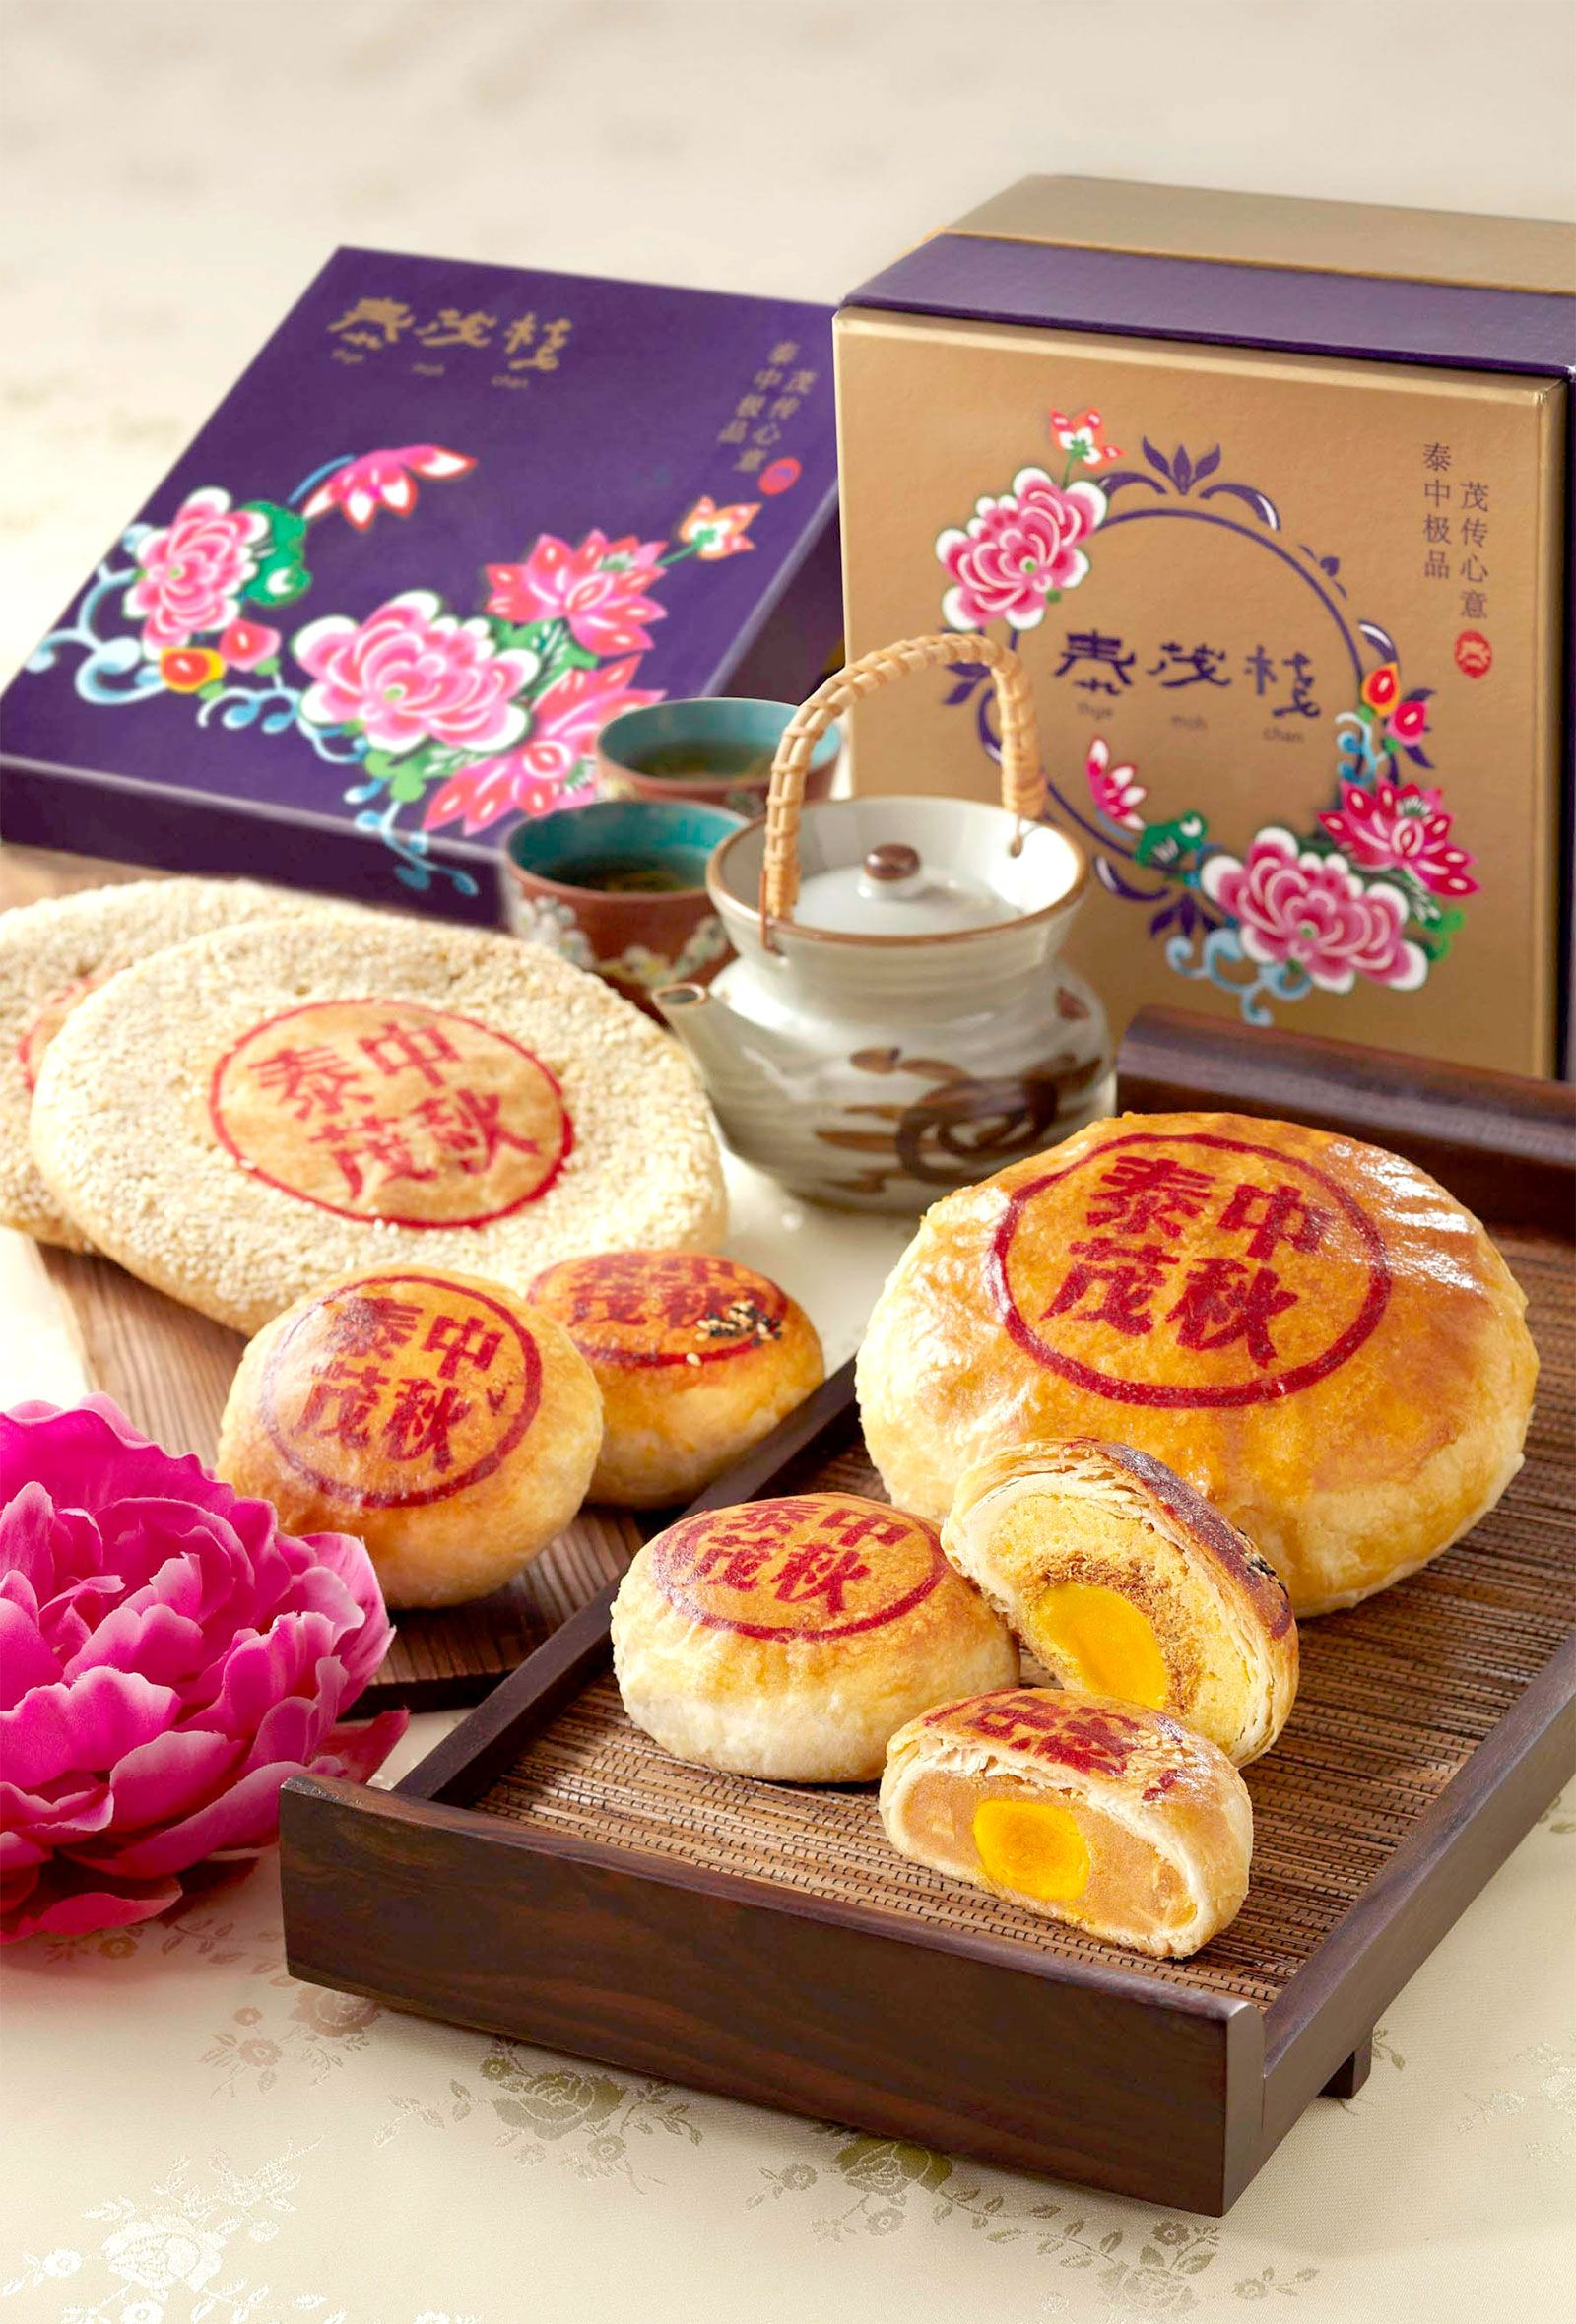 Teochew Mooncakes from Thye Moh Chan MidAutumn Food